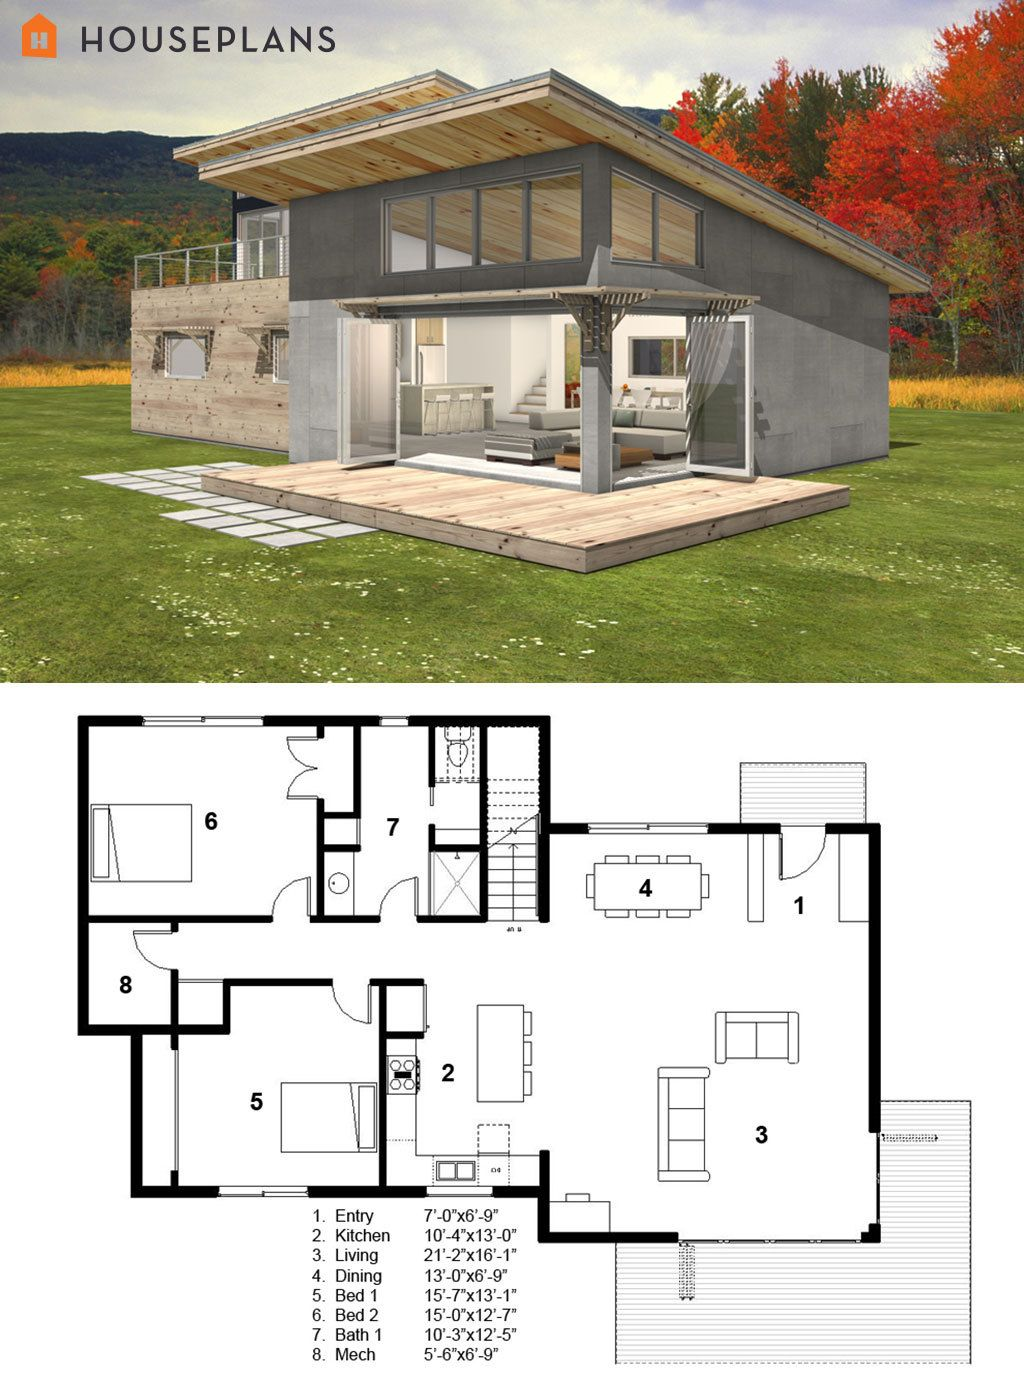 Modern style house plan 3 beds baths 2115 sq ft for Modern square house plans